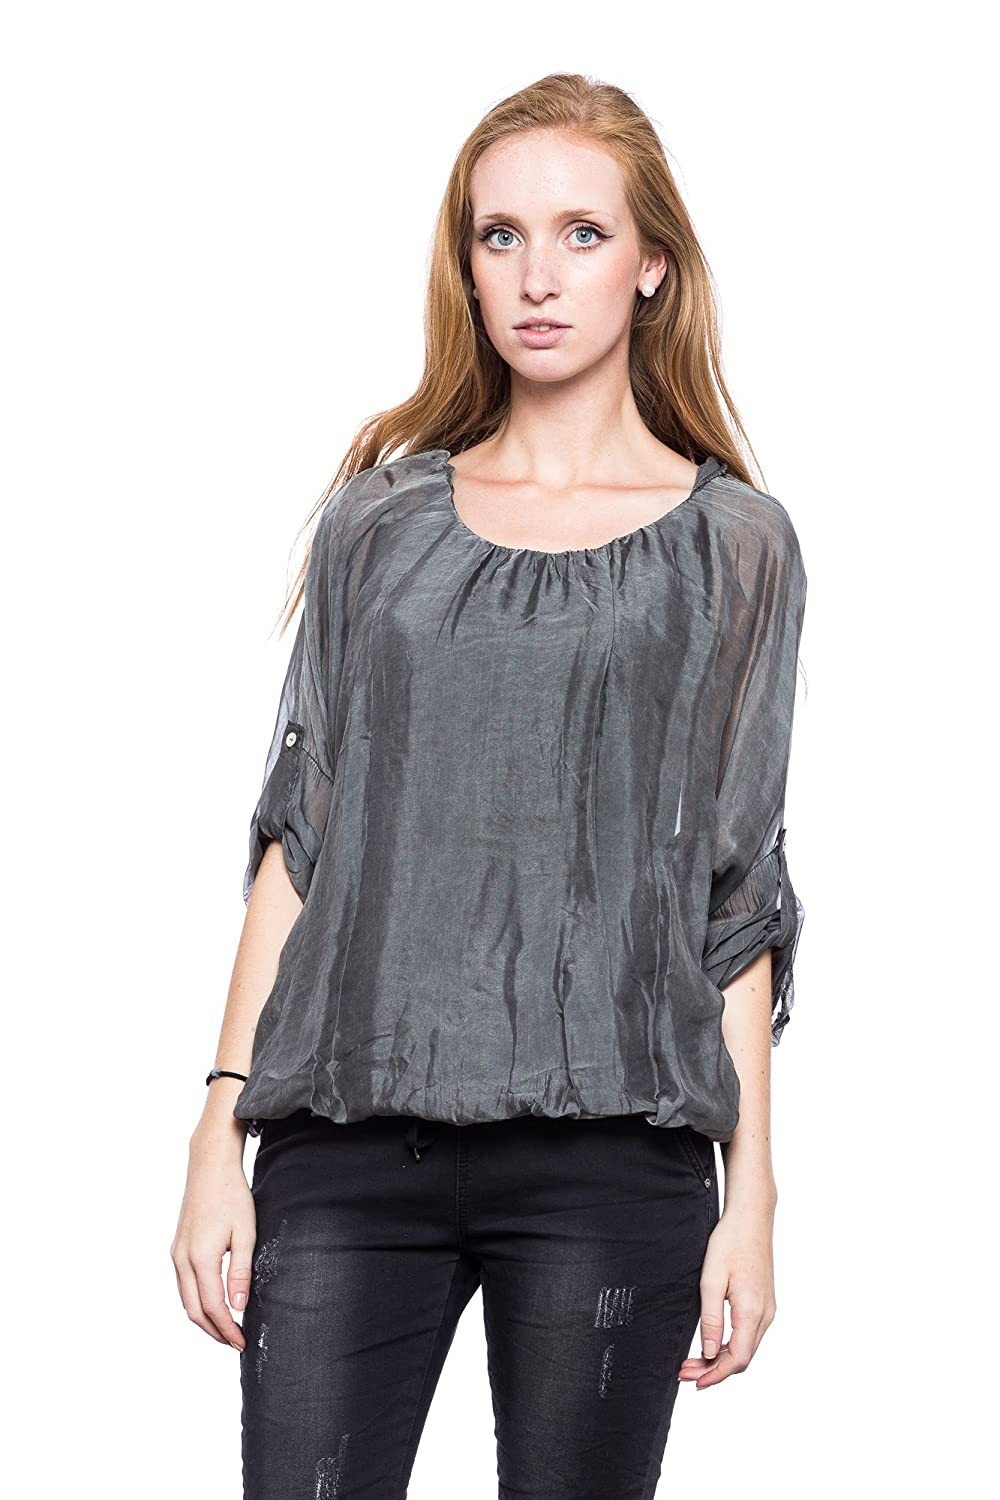 Abbino Silk Blouse Shirt Ulrica - Made in Italy - Lovely & Elegant - 6 Colours